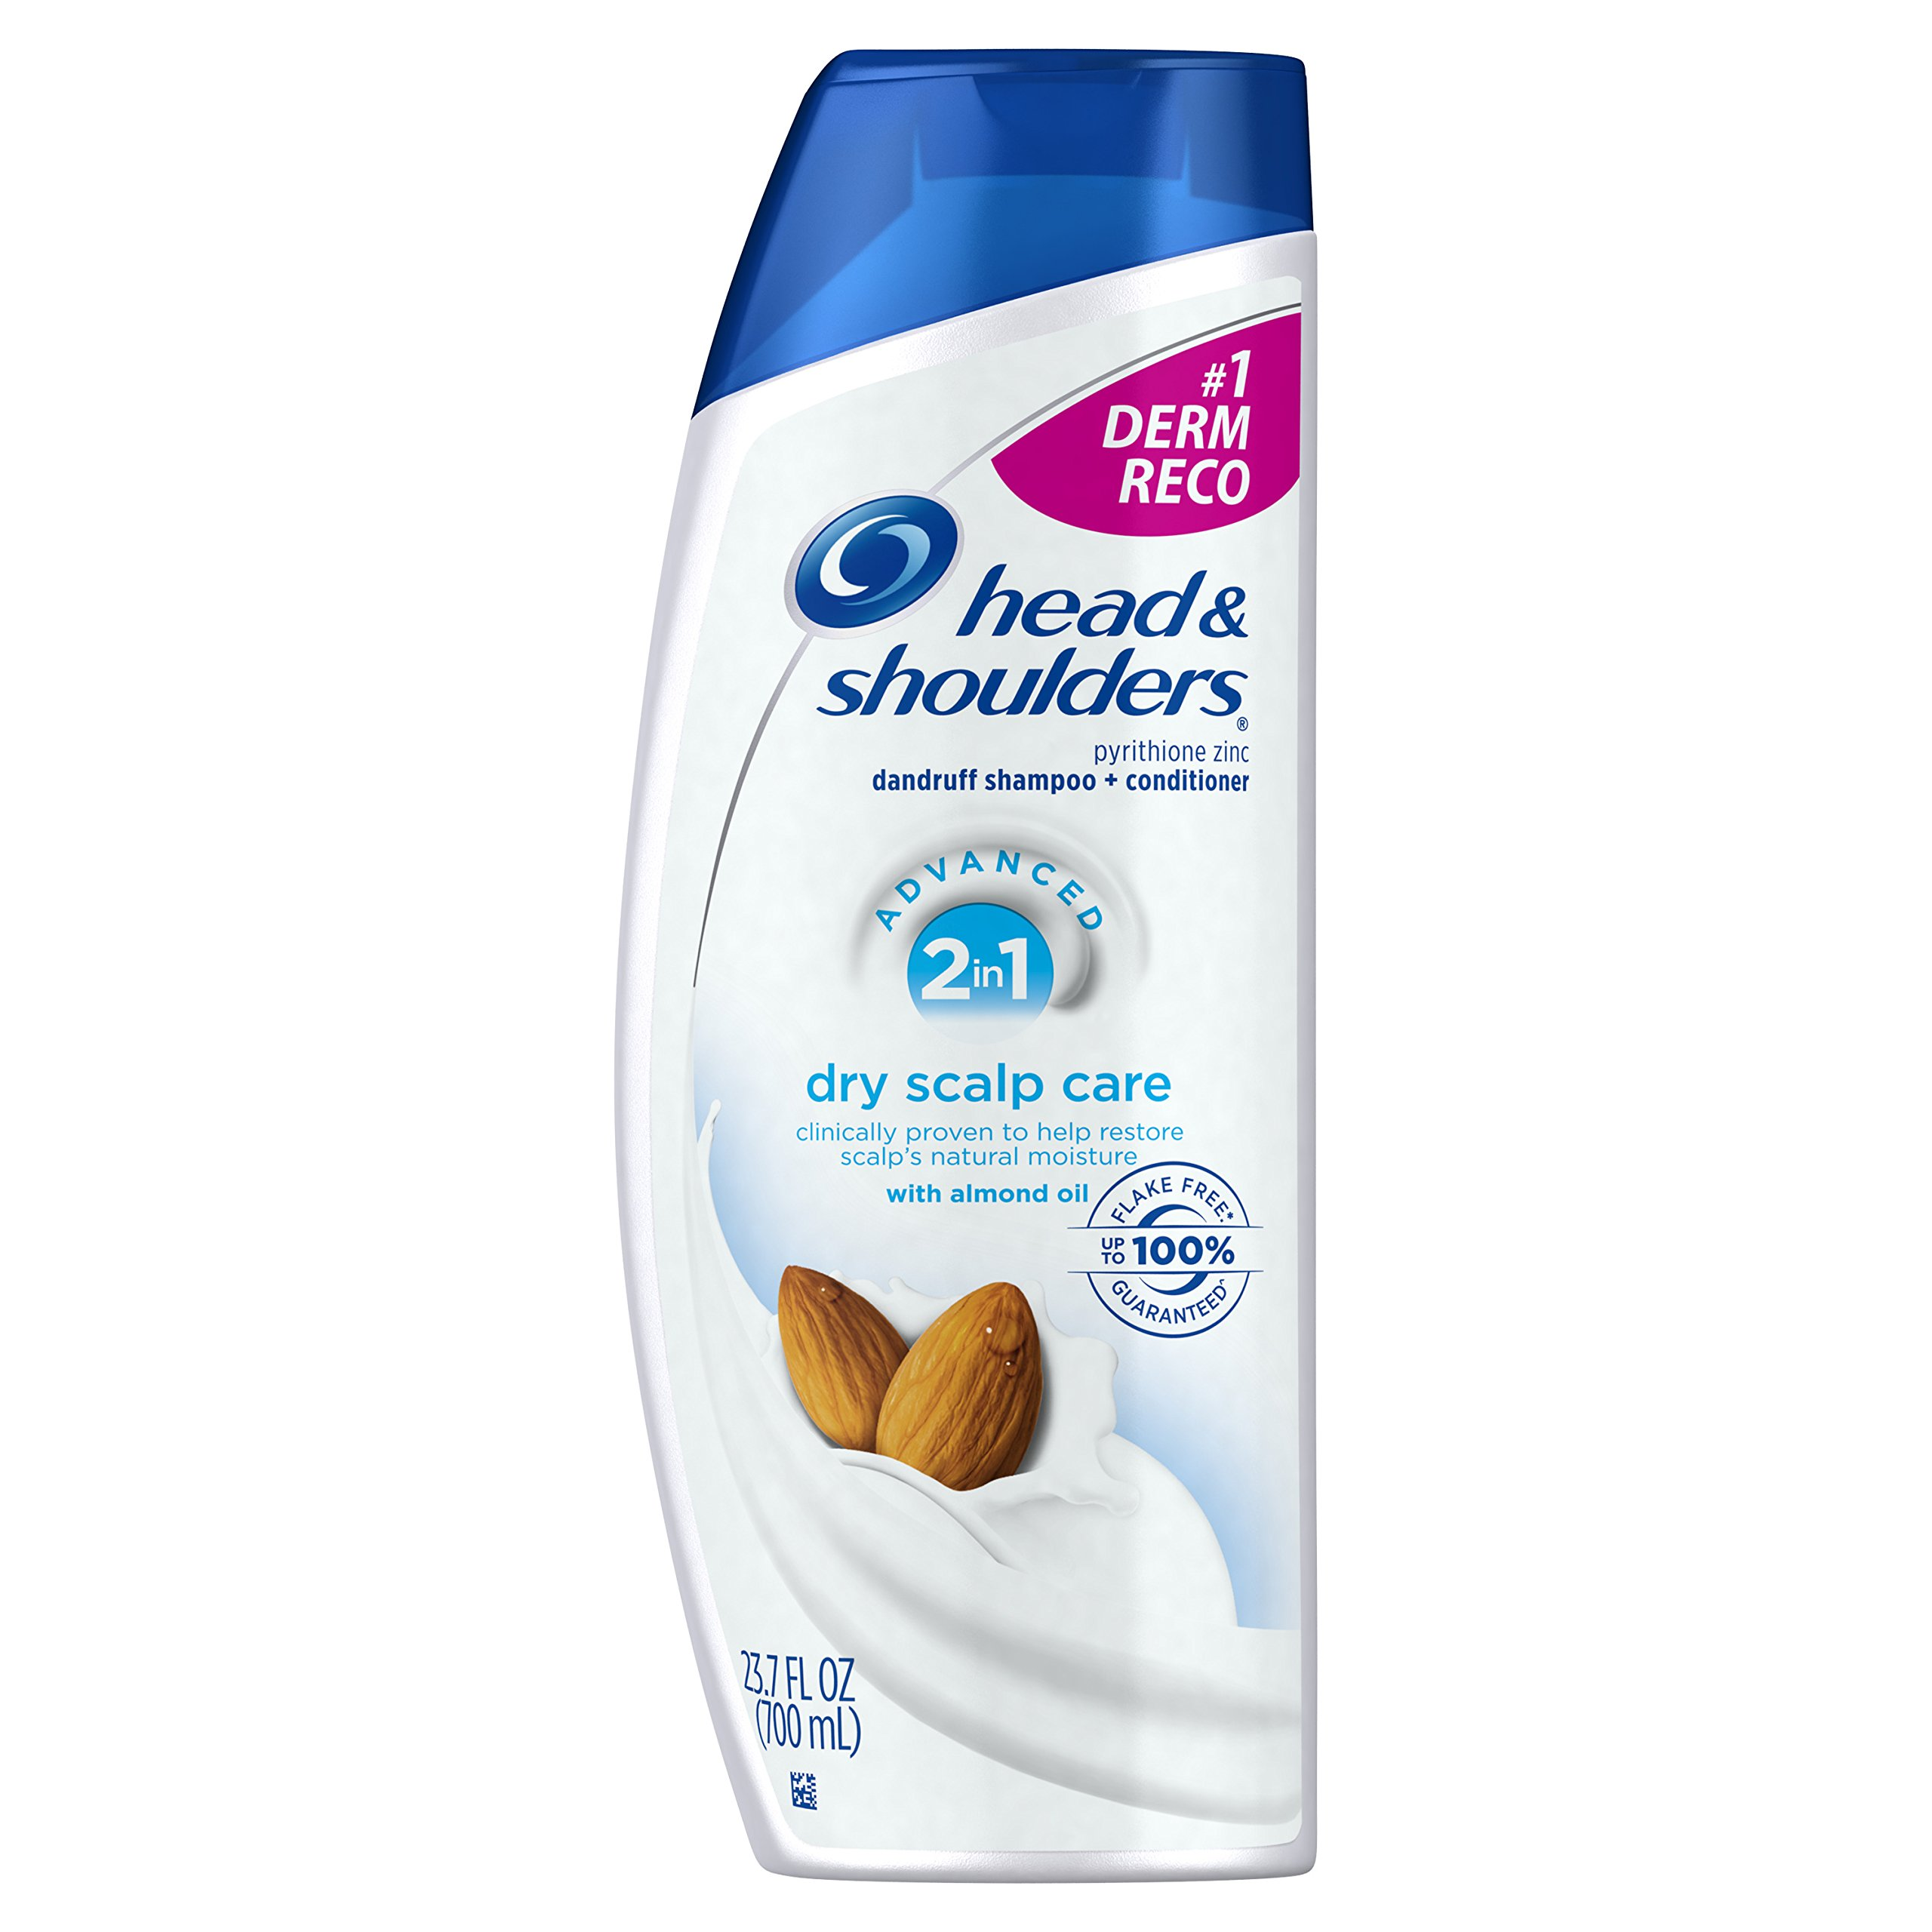 Head & Shoulders Dry Scalp Care with Almond Oil 2-in-1 Anti-Dandruff Shampo,23.7 ounce (Pack of 2)